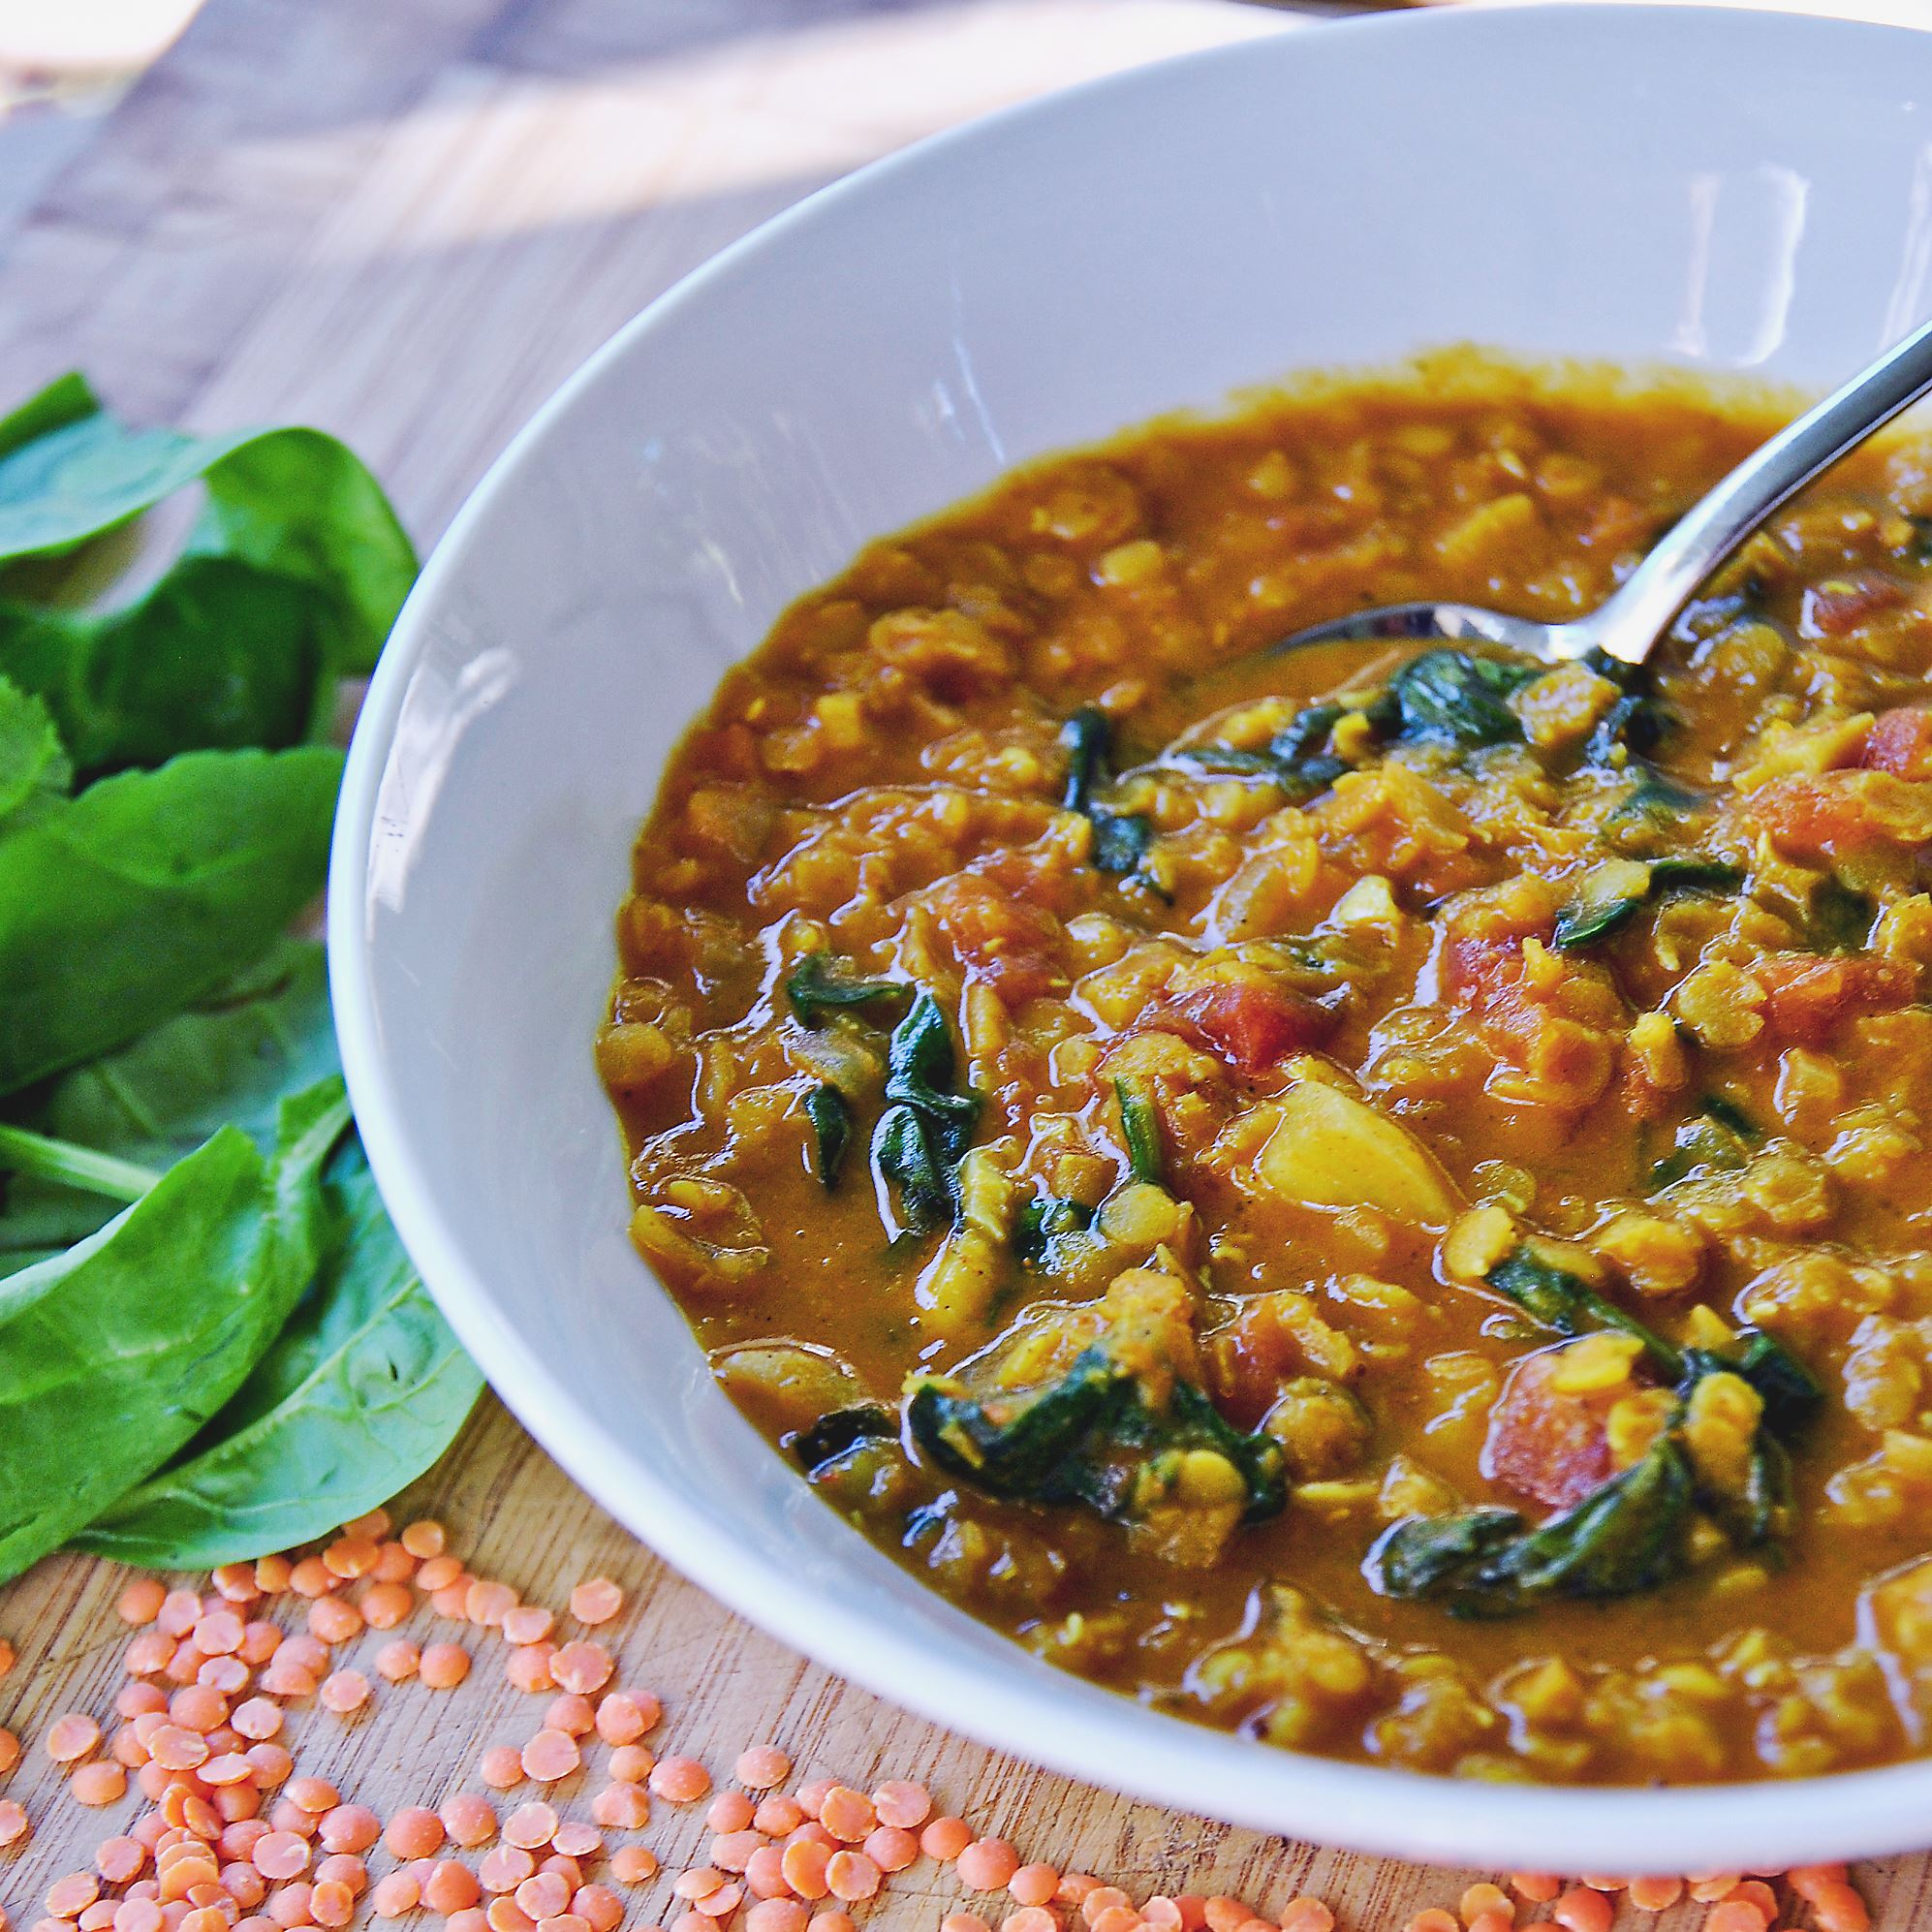 Lentils - Grains also can be used as protein